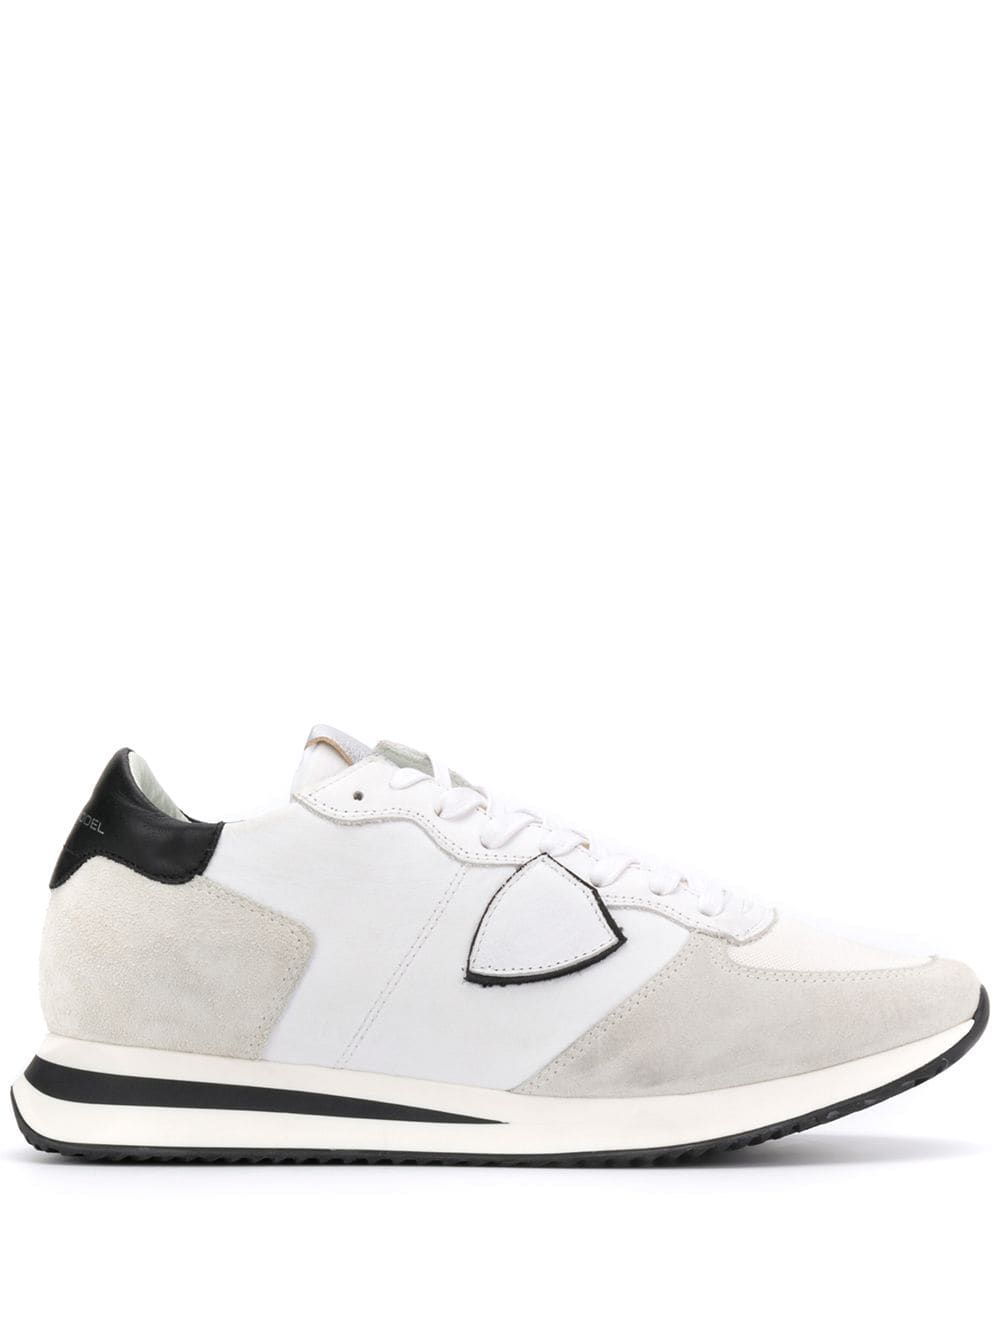 heißer verkauf Philippe Model TPRX Sneakers | Products in